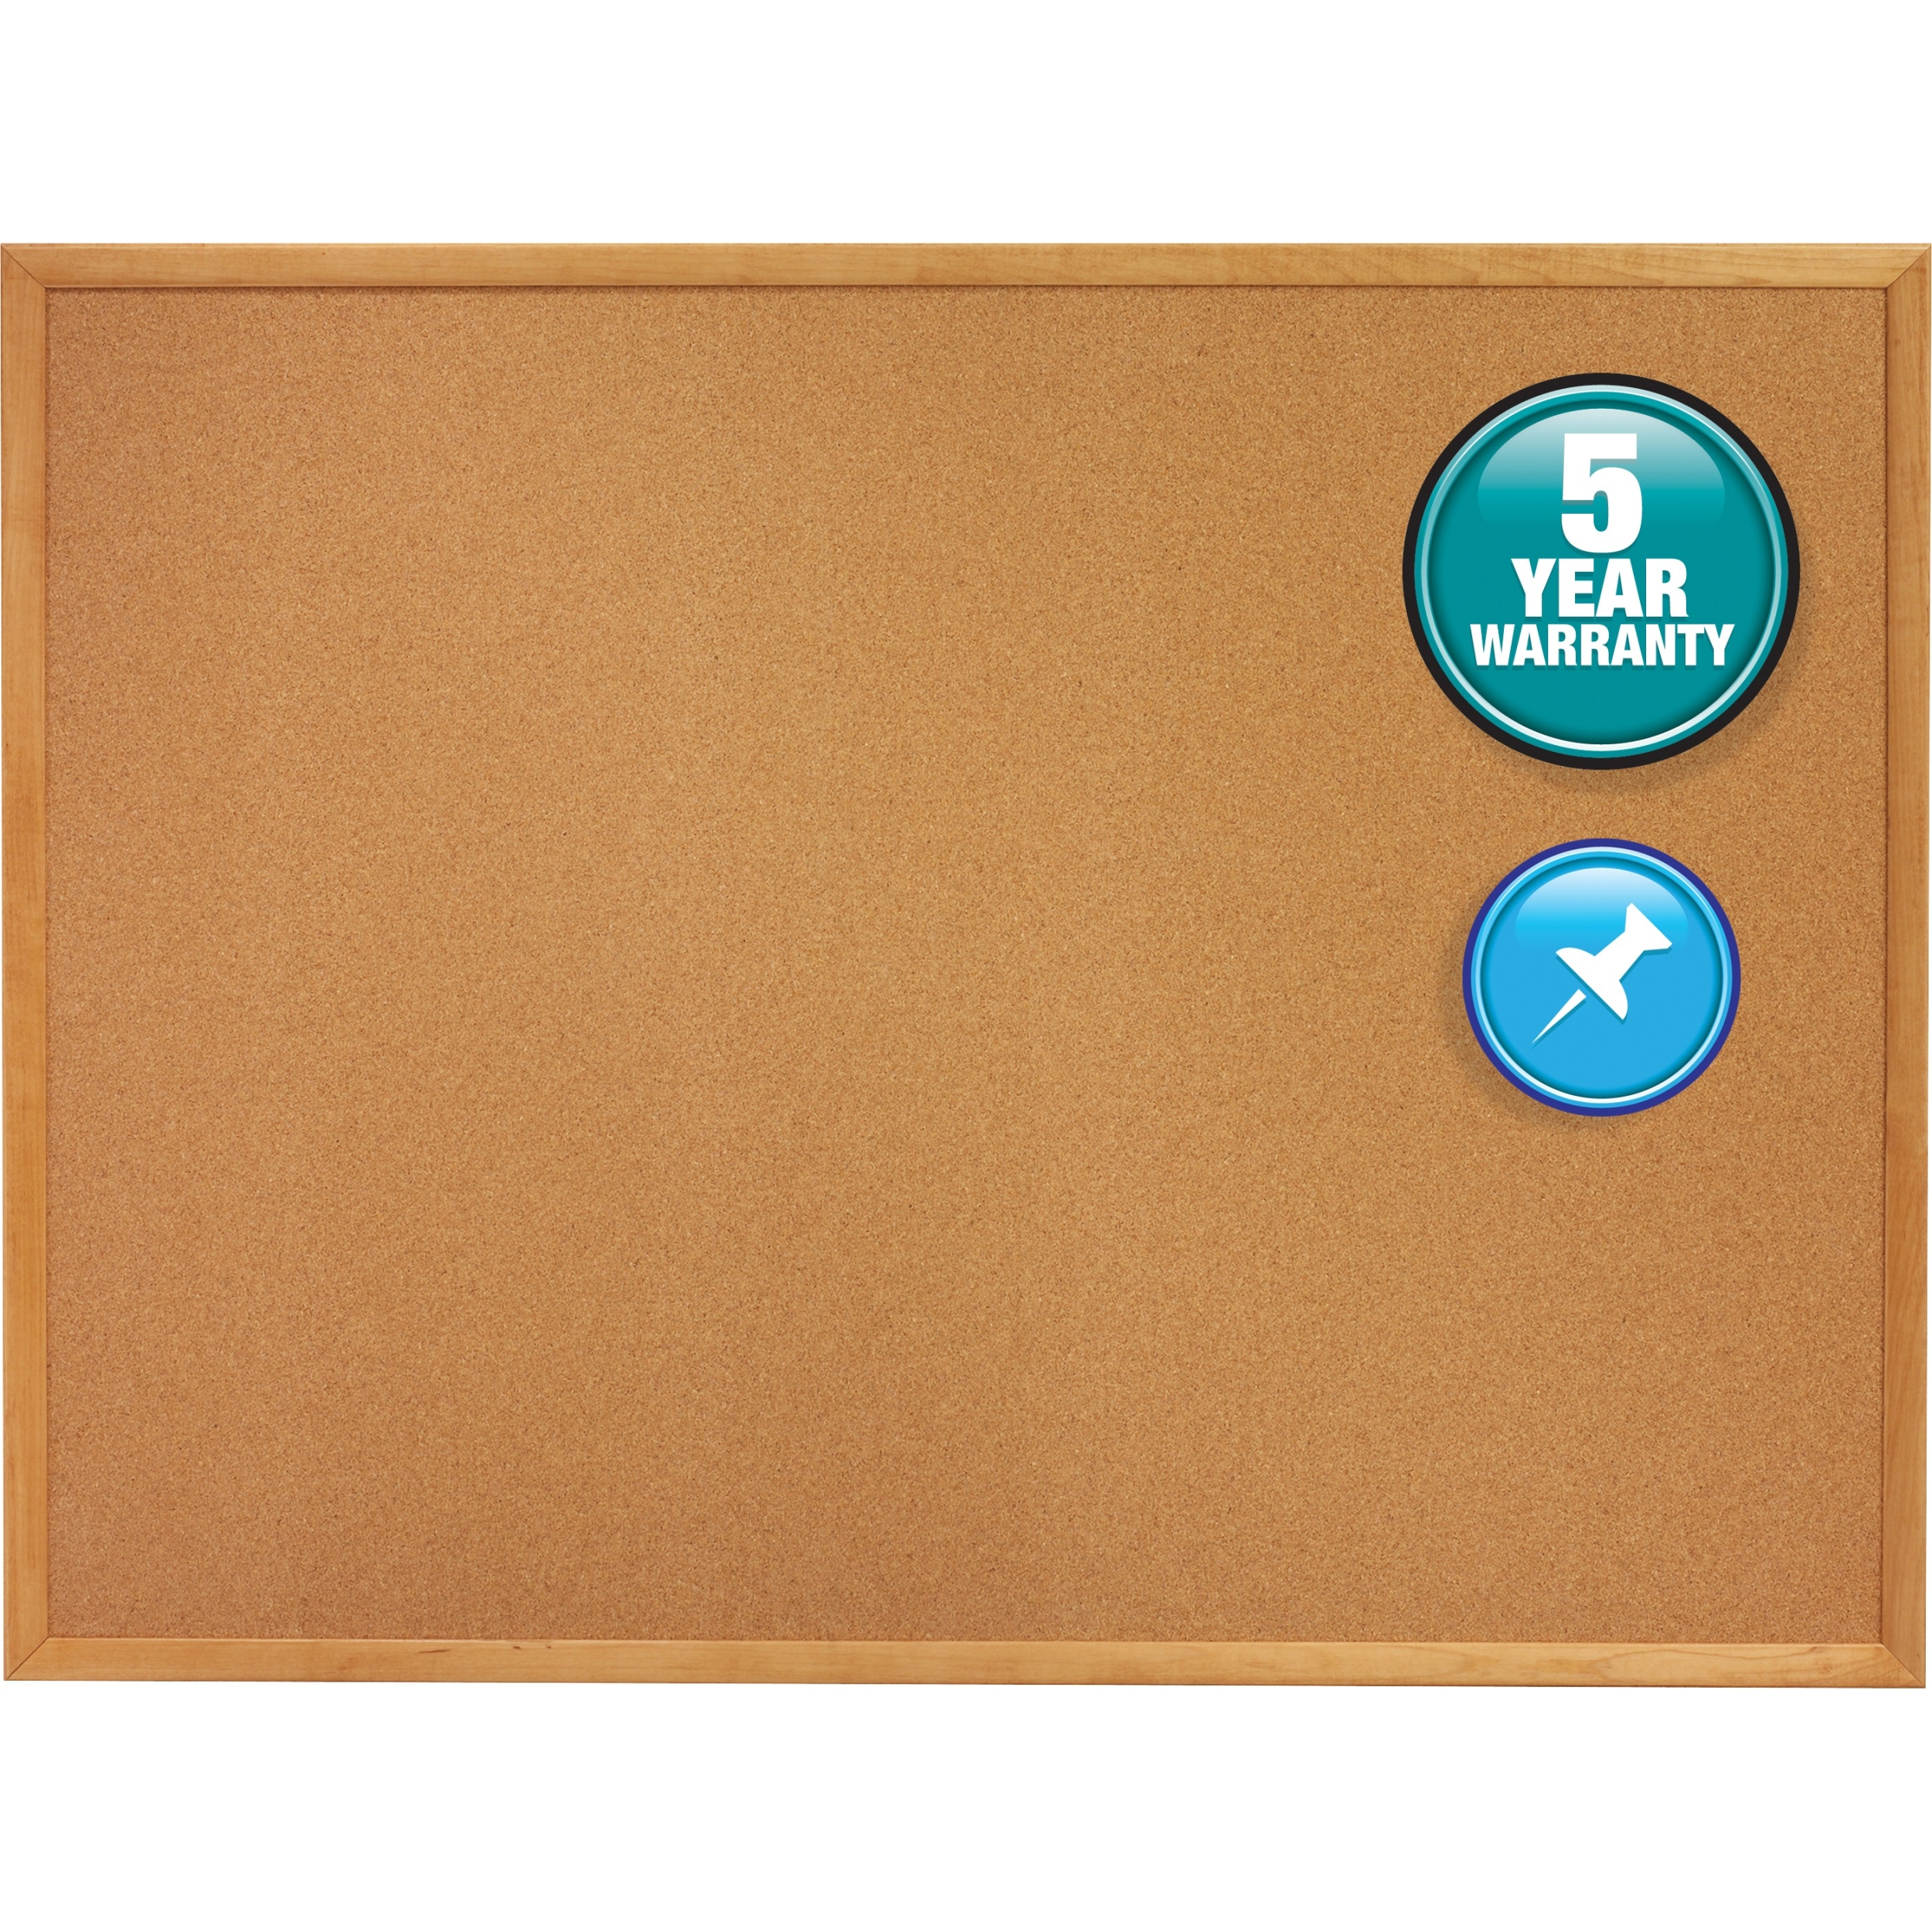 Quartet Classic Series Cork Bulletin Board, 72 x 48, Oak Finish Frame